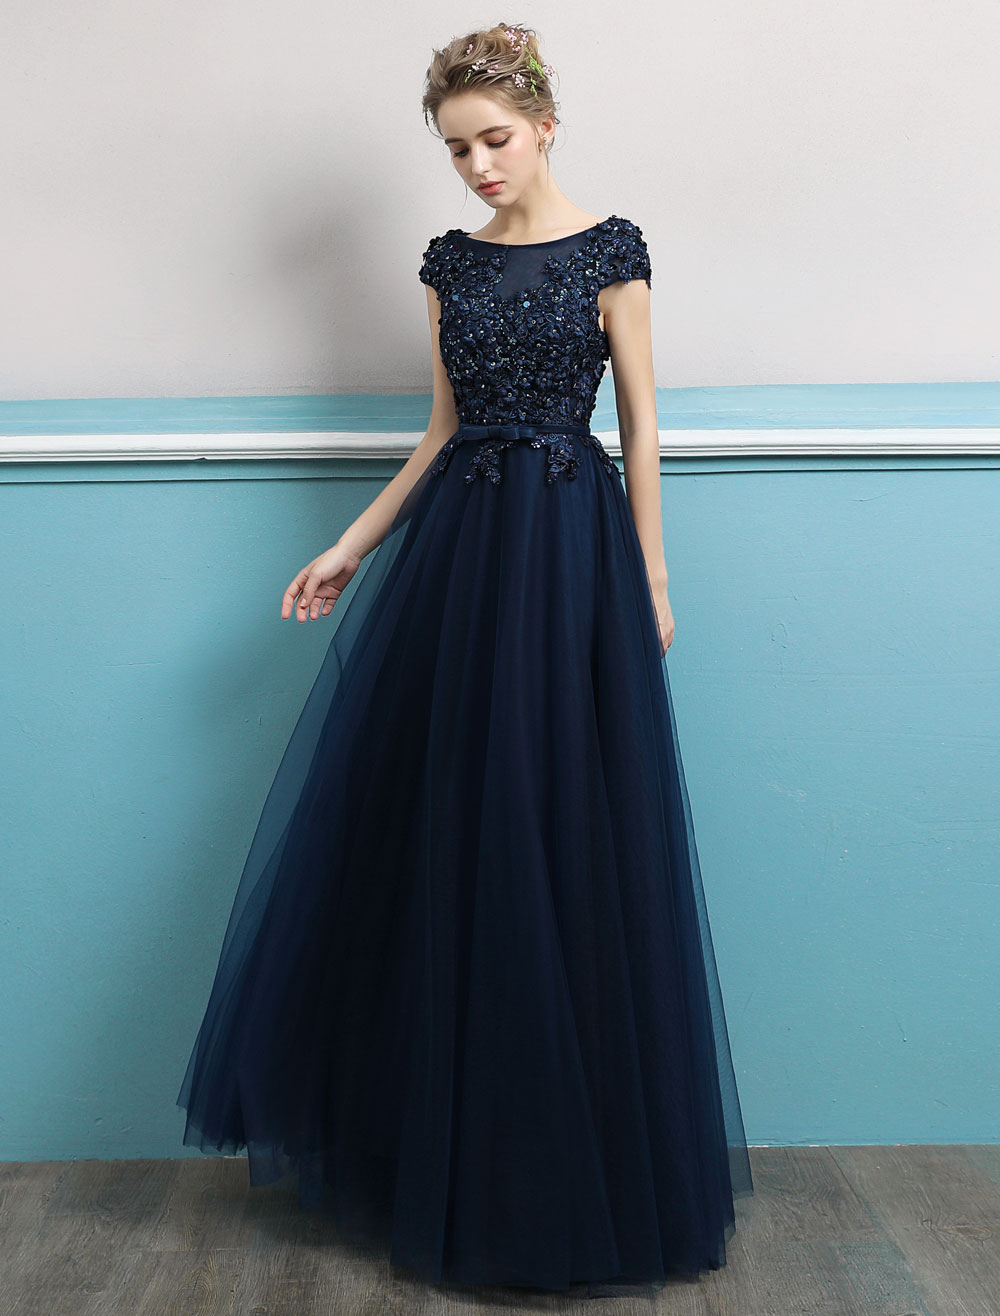 b01c805f8b ... Prom Dresses 2019 Long Dark Navy Evening Dress Jewel Neck Open Back  Sequin Flowers Beaded Tulle. 12. 55%OFF. Color Dark Navy